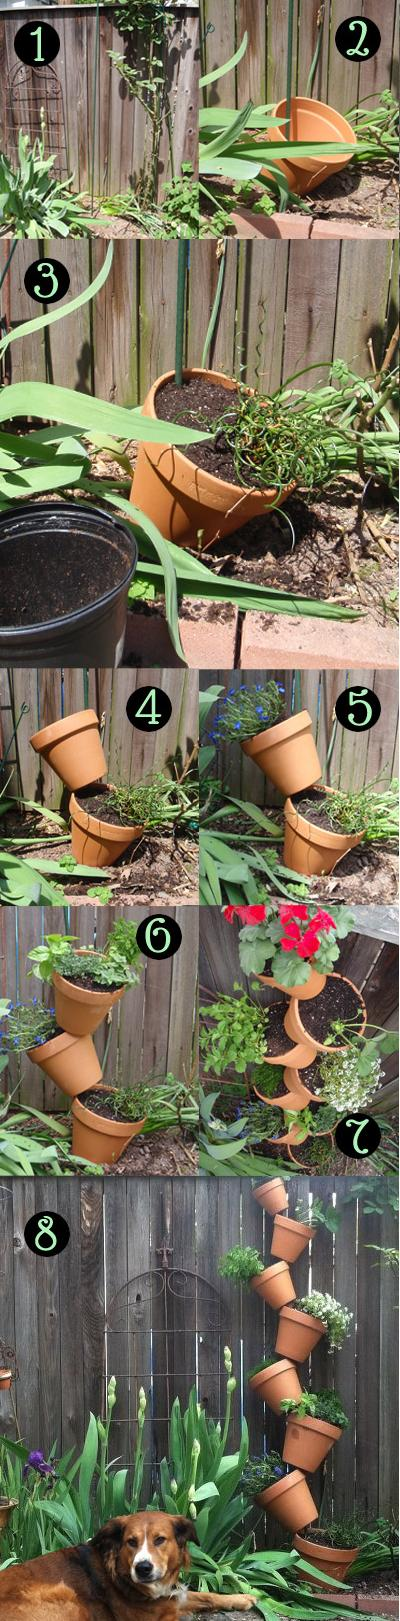 Create a Vertical Garden with Terracotta Pots